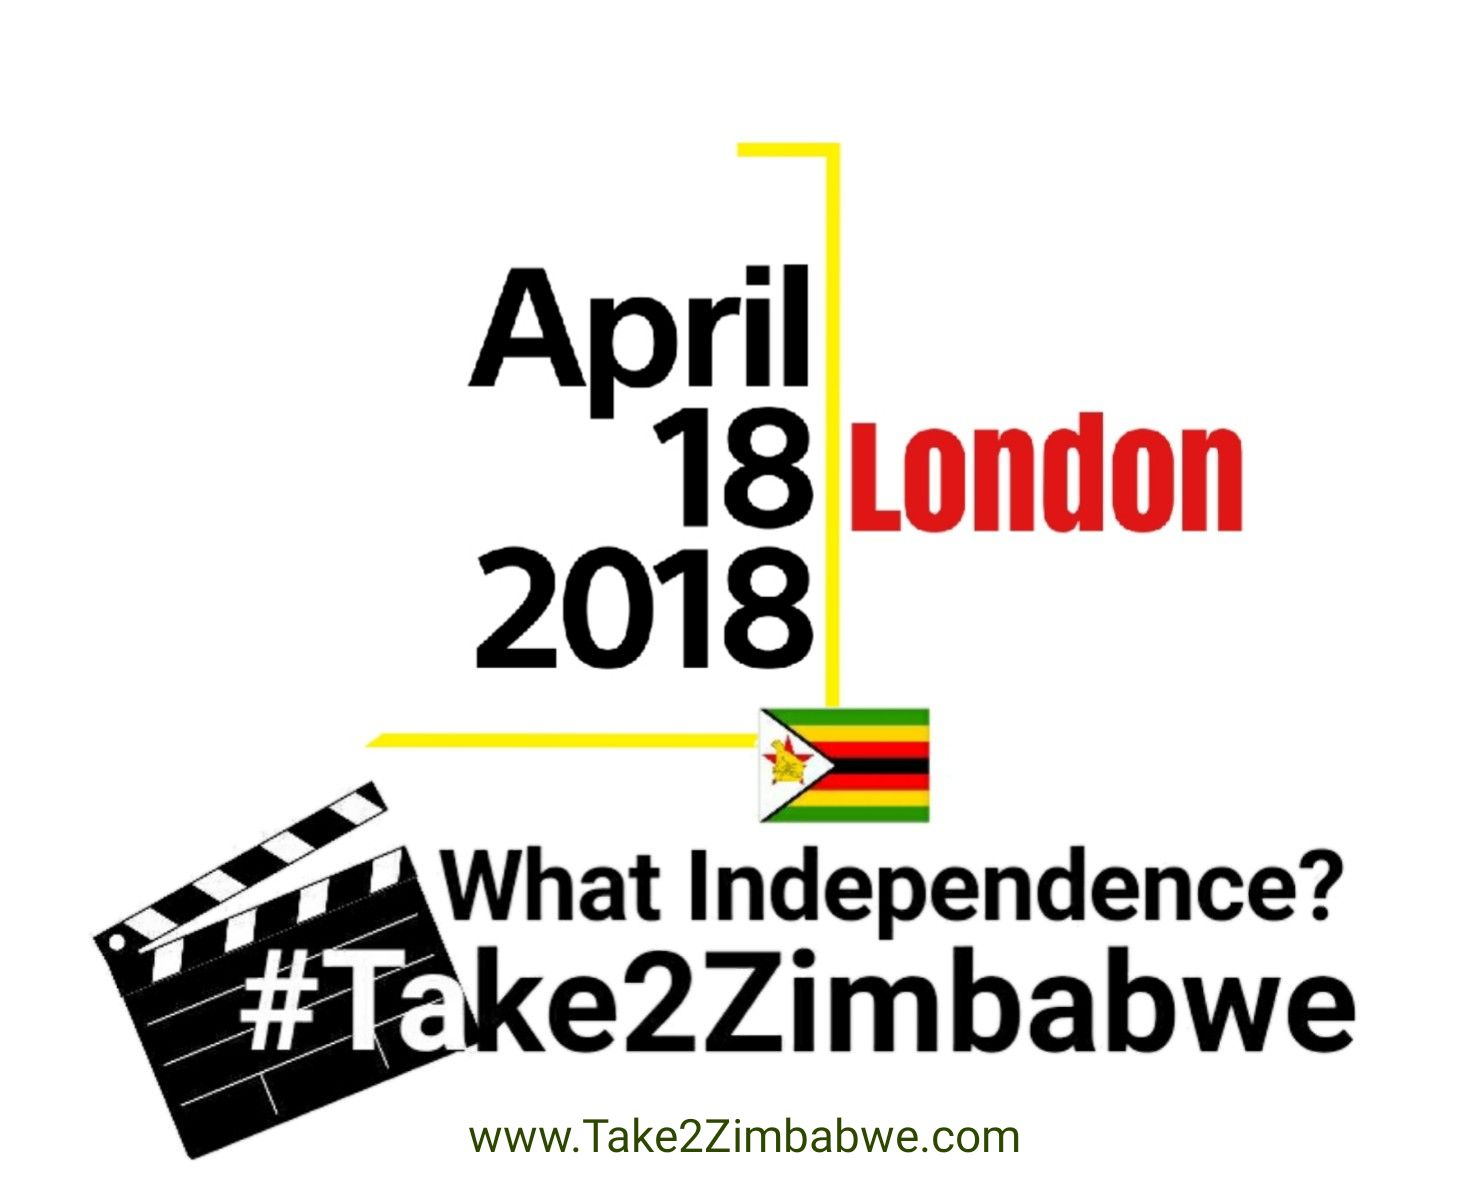 Take2Zimbabwe Wednesday 18th April 2018